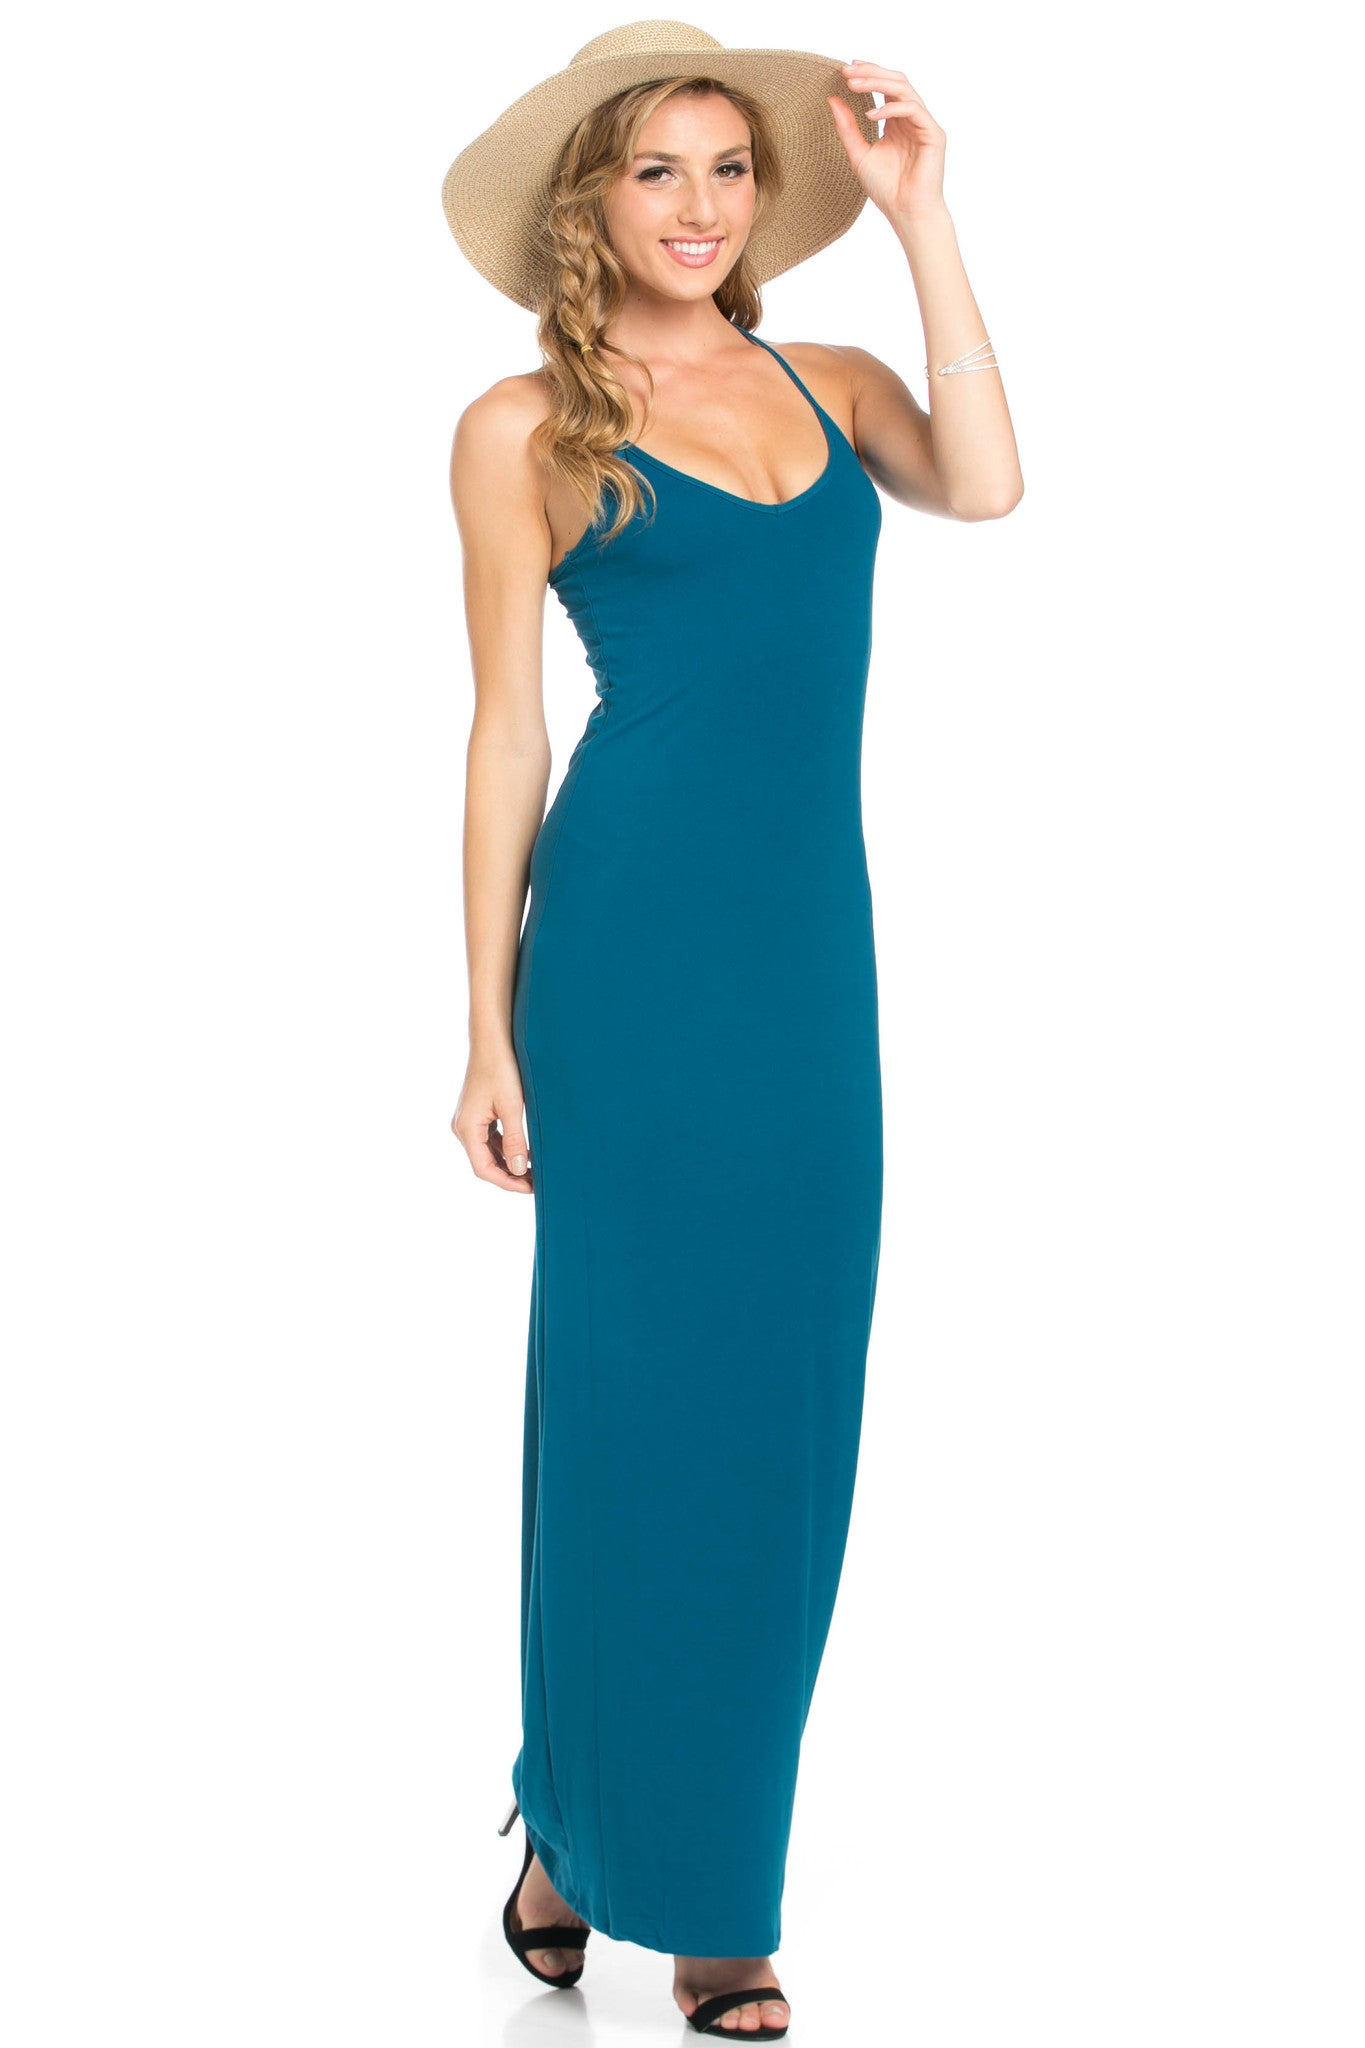 Micro Suede Teal Maxi Dress - Dresses - My Yuccie - 10